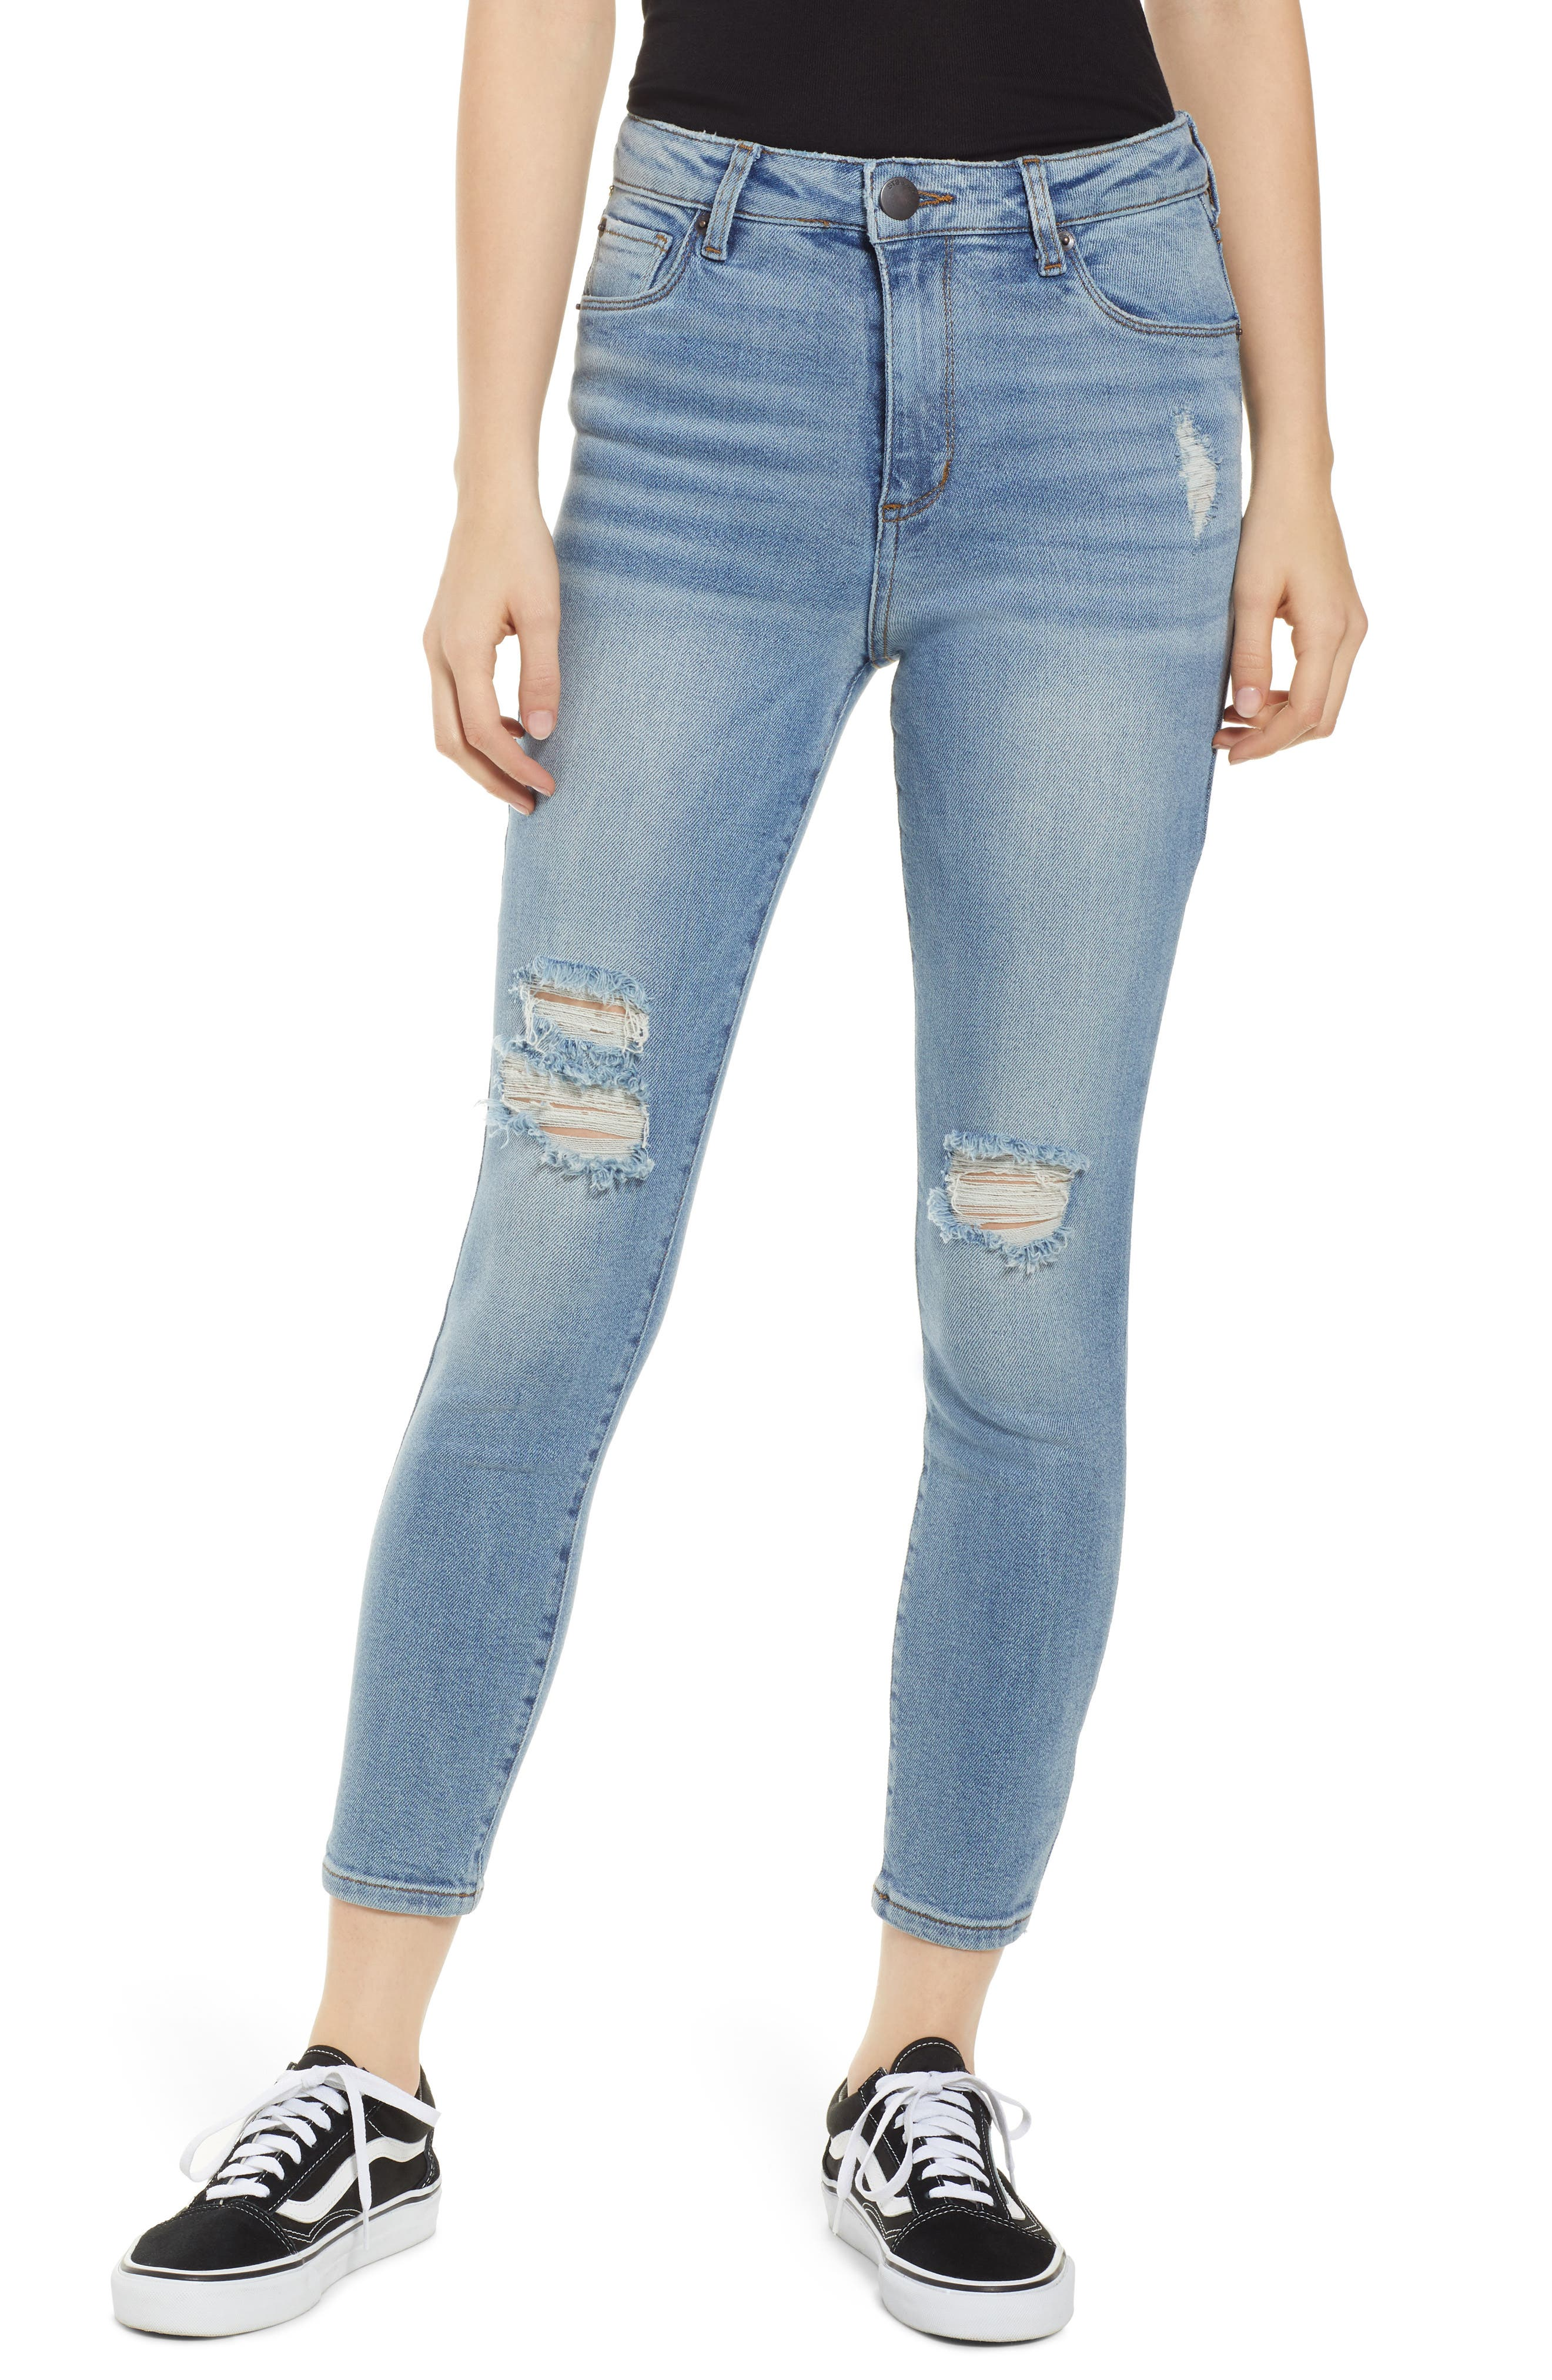 Brie High Waist Ripped Skinny Jeans, Main, color, BRADFORD LIGHT WASH